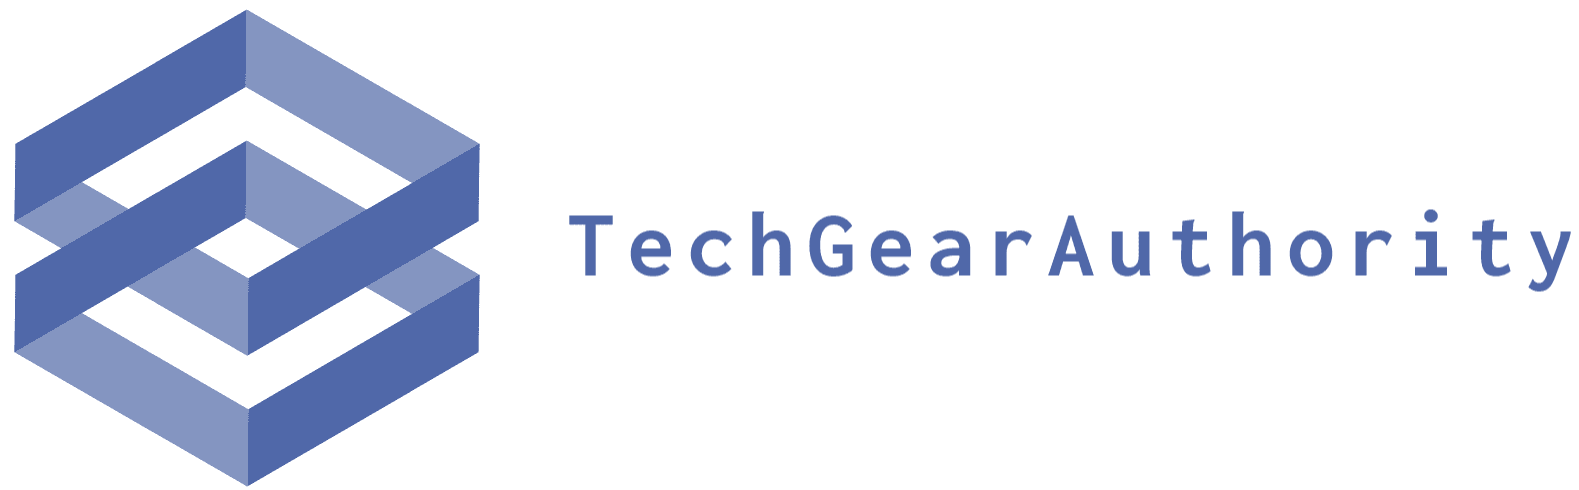 TechGearAuthority